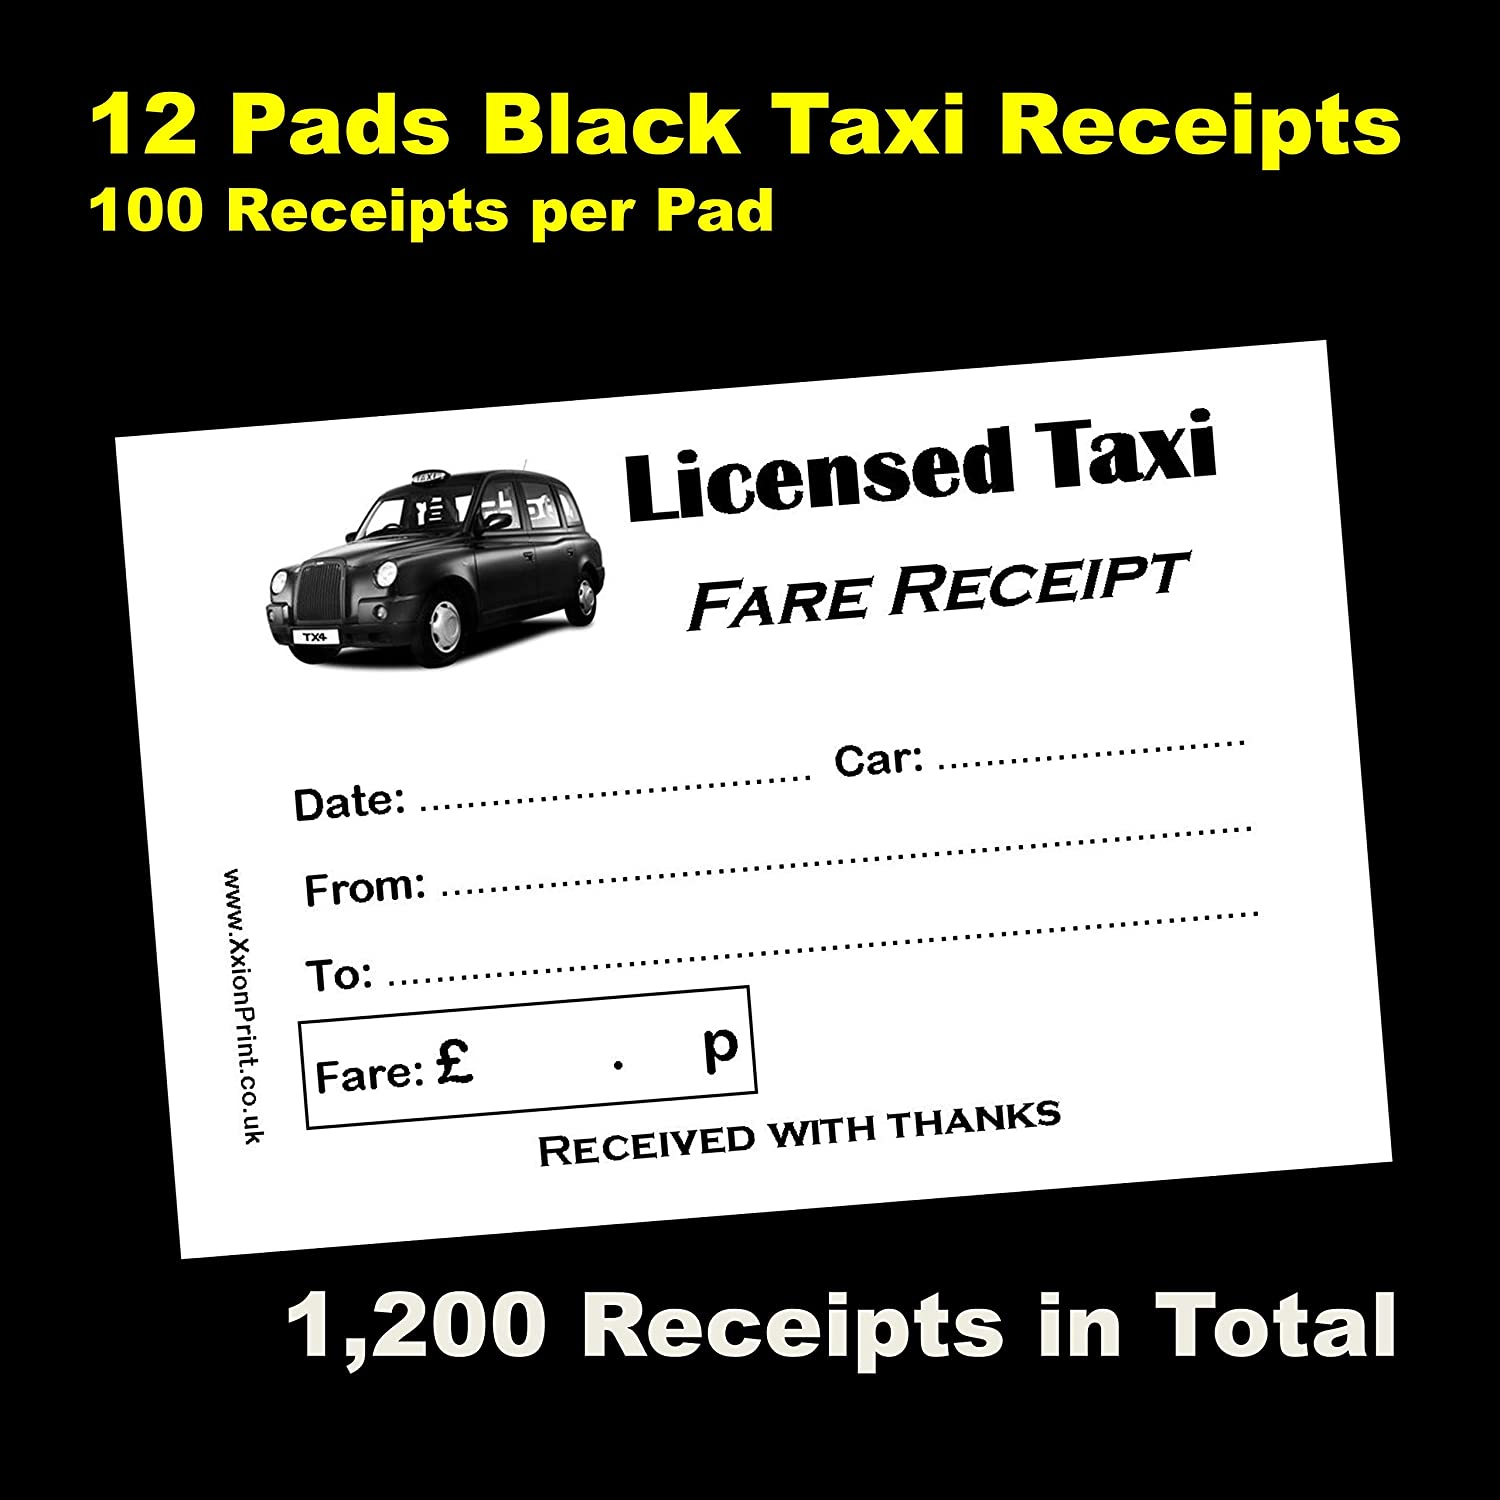 Mechanic Receipt Excel Licensed Taxi Driver Receipt Bookpads  For London Black Cab  Evernote Receipt Scanner Excel with Po Invoice Word Black Cab Or Licensed Taxi Fare Receipt Pads  Pack Of  X  Sheet Pads My Invoice And Estimates